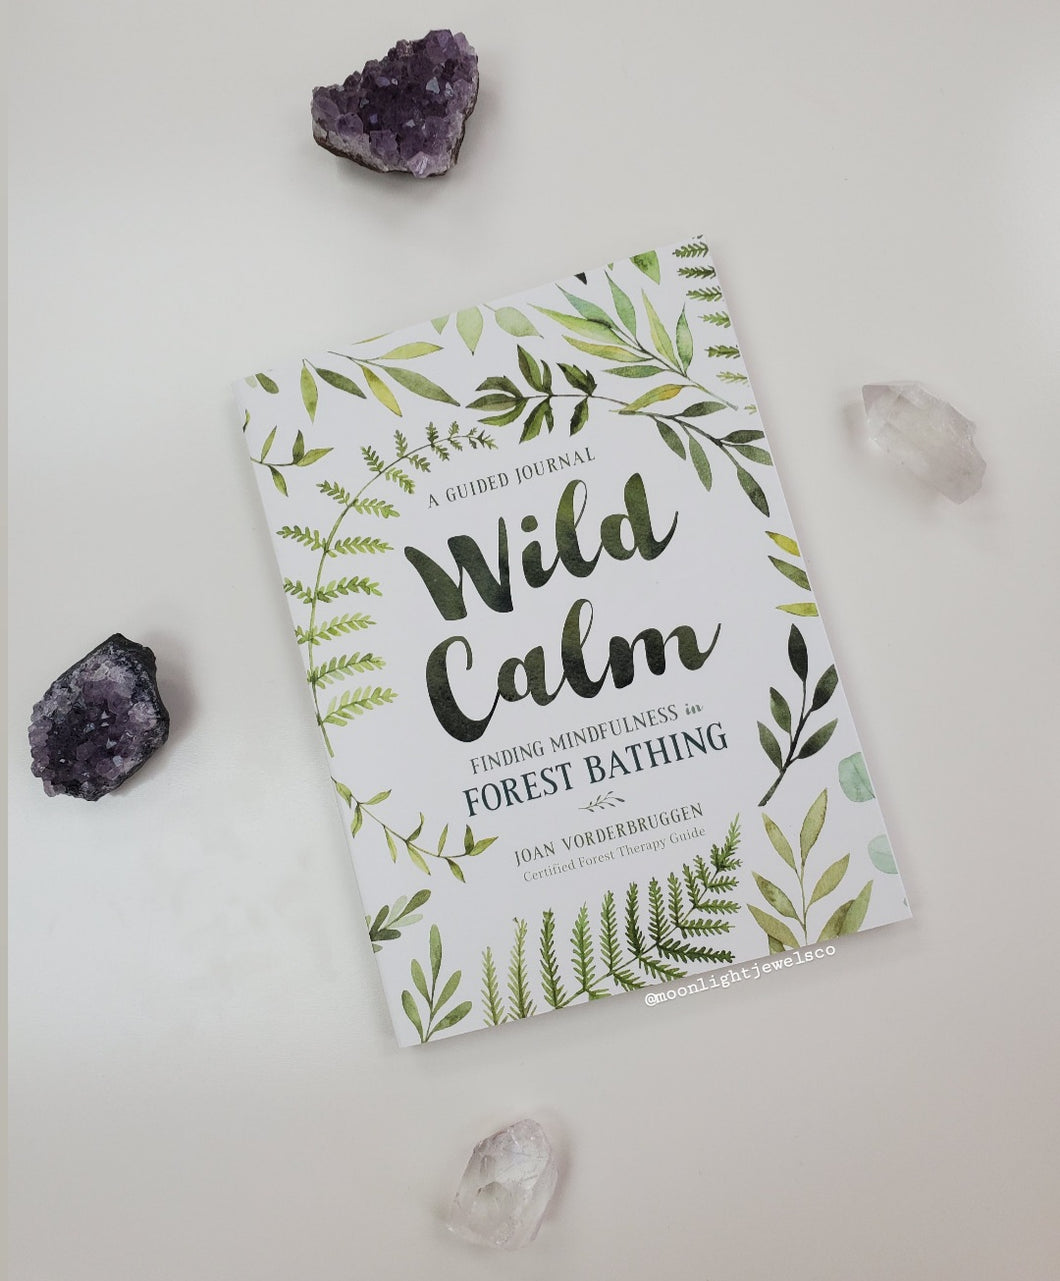 Wild Calm - Finding Mindfulness in Forest Bathing: A Guided Journal